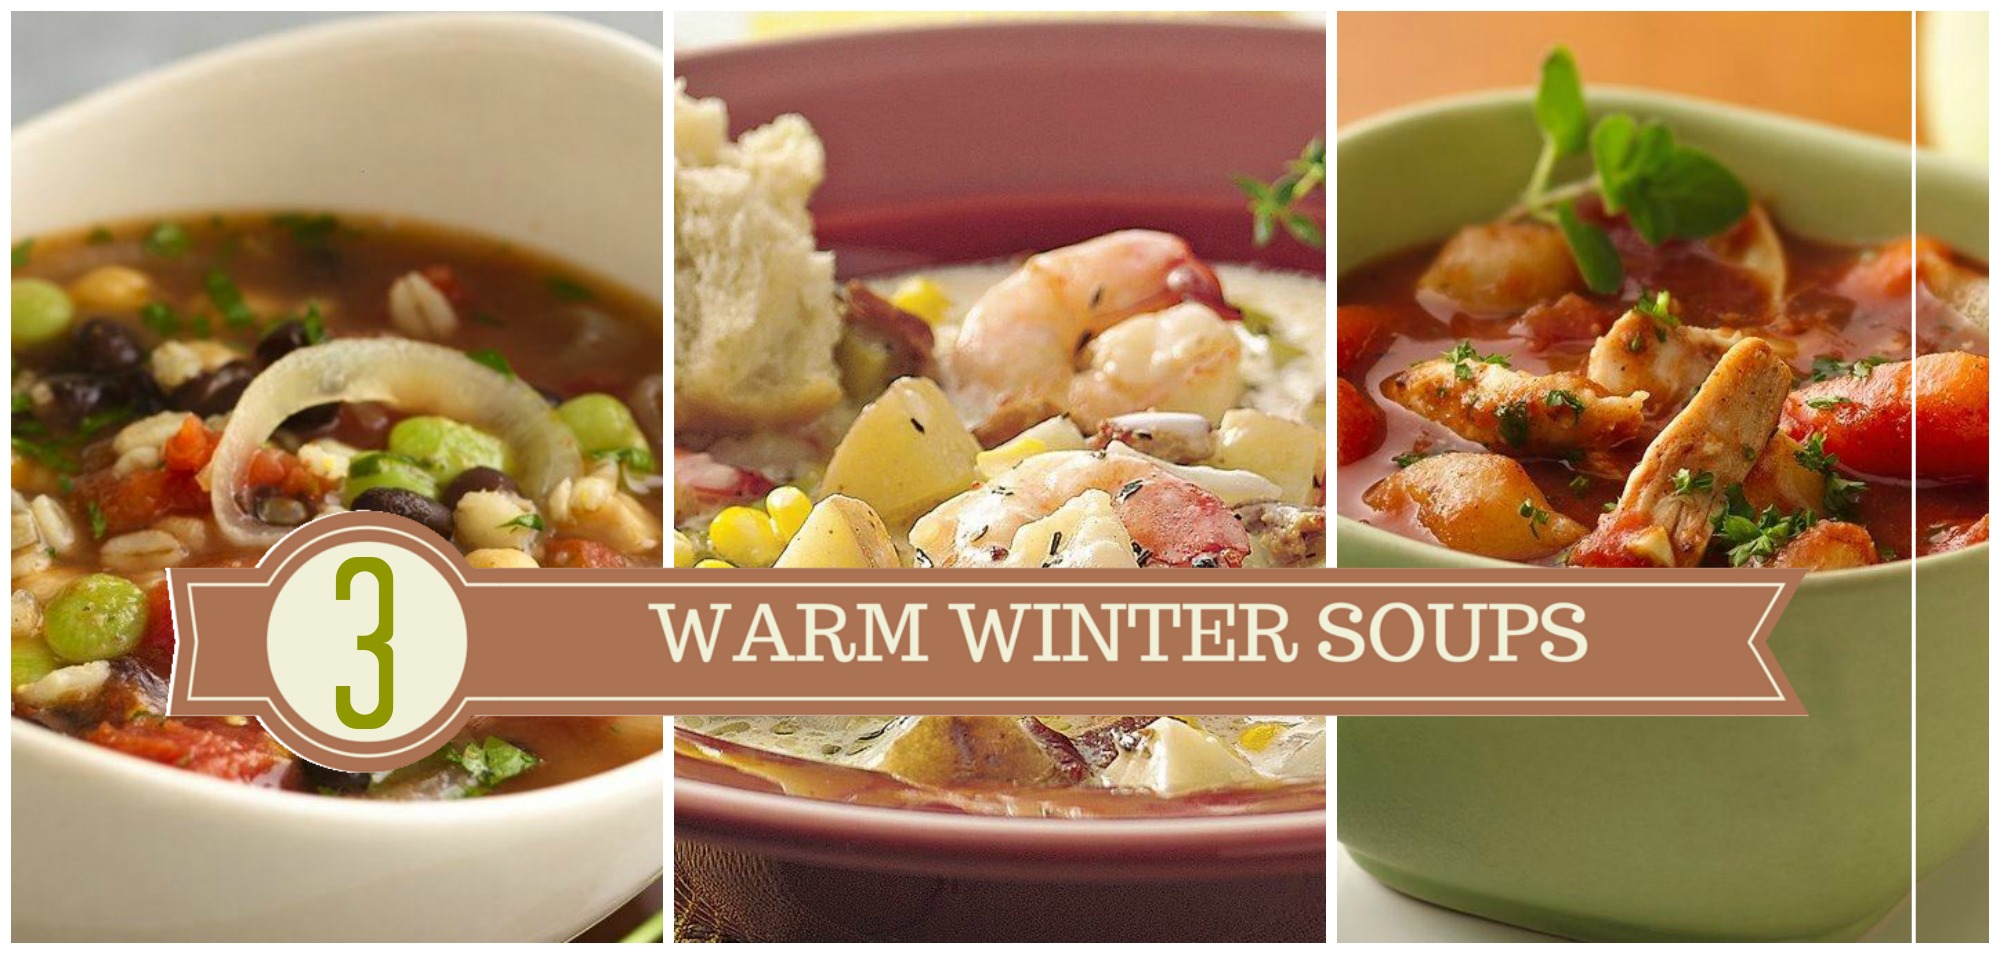 3 Warm Winter Soup Ideas